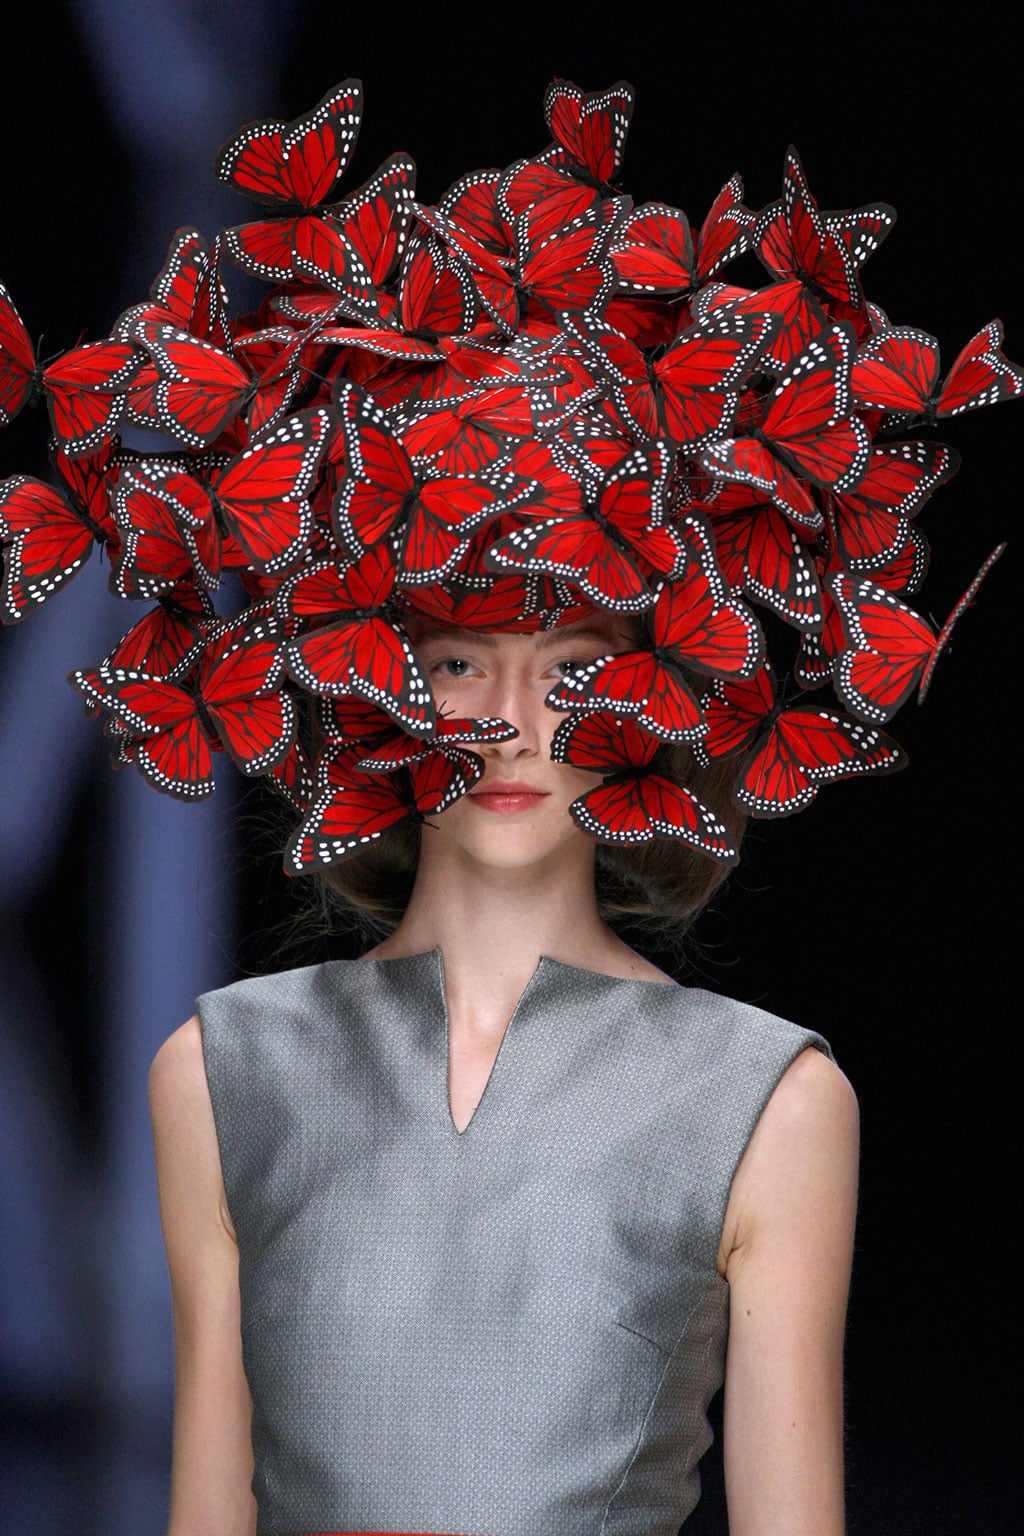 Philip Treacy for Alexander McQueen, Butterfly headdress of hand-painted turkey feathers La Dame Bleue,S/S 2008